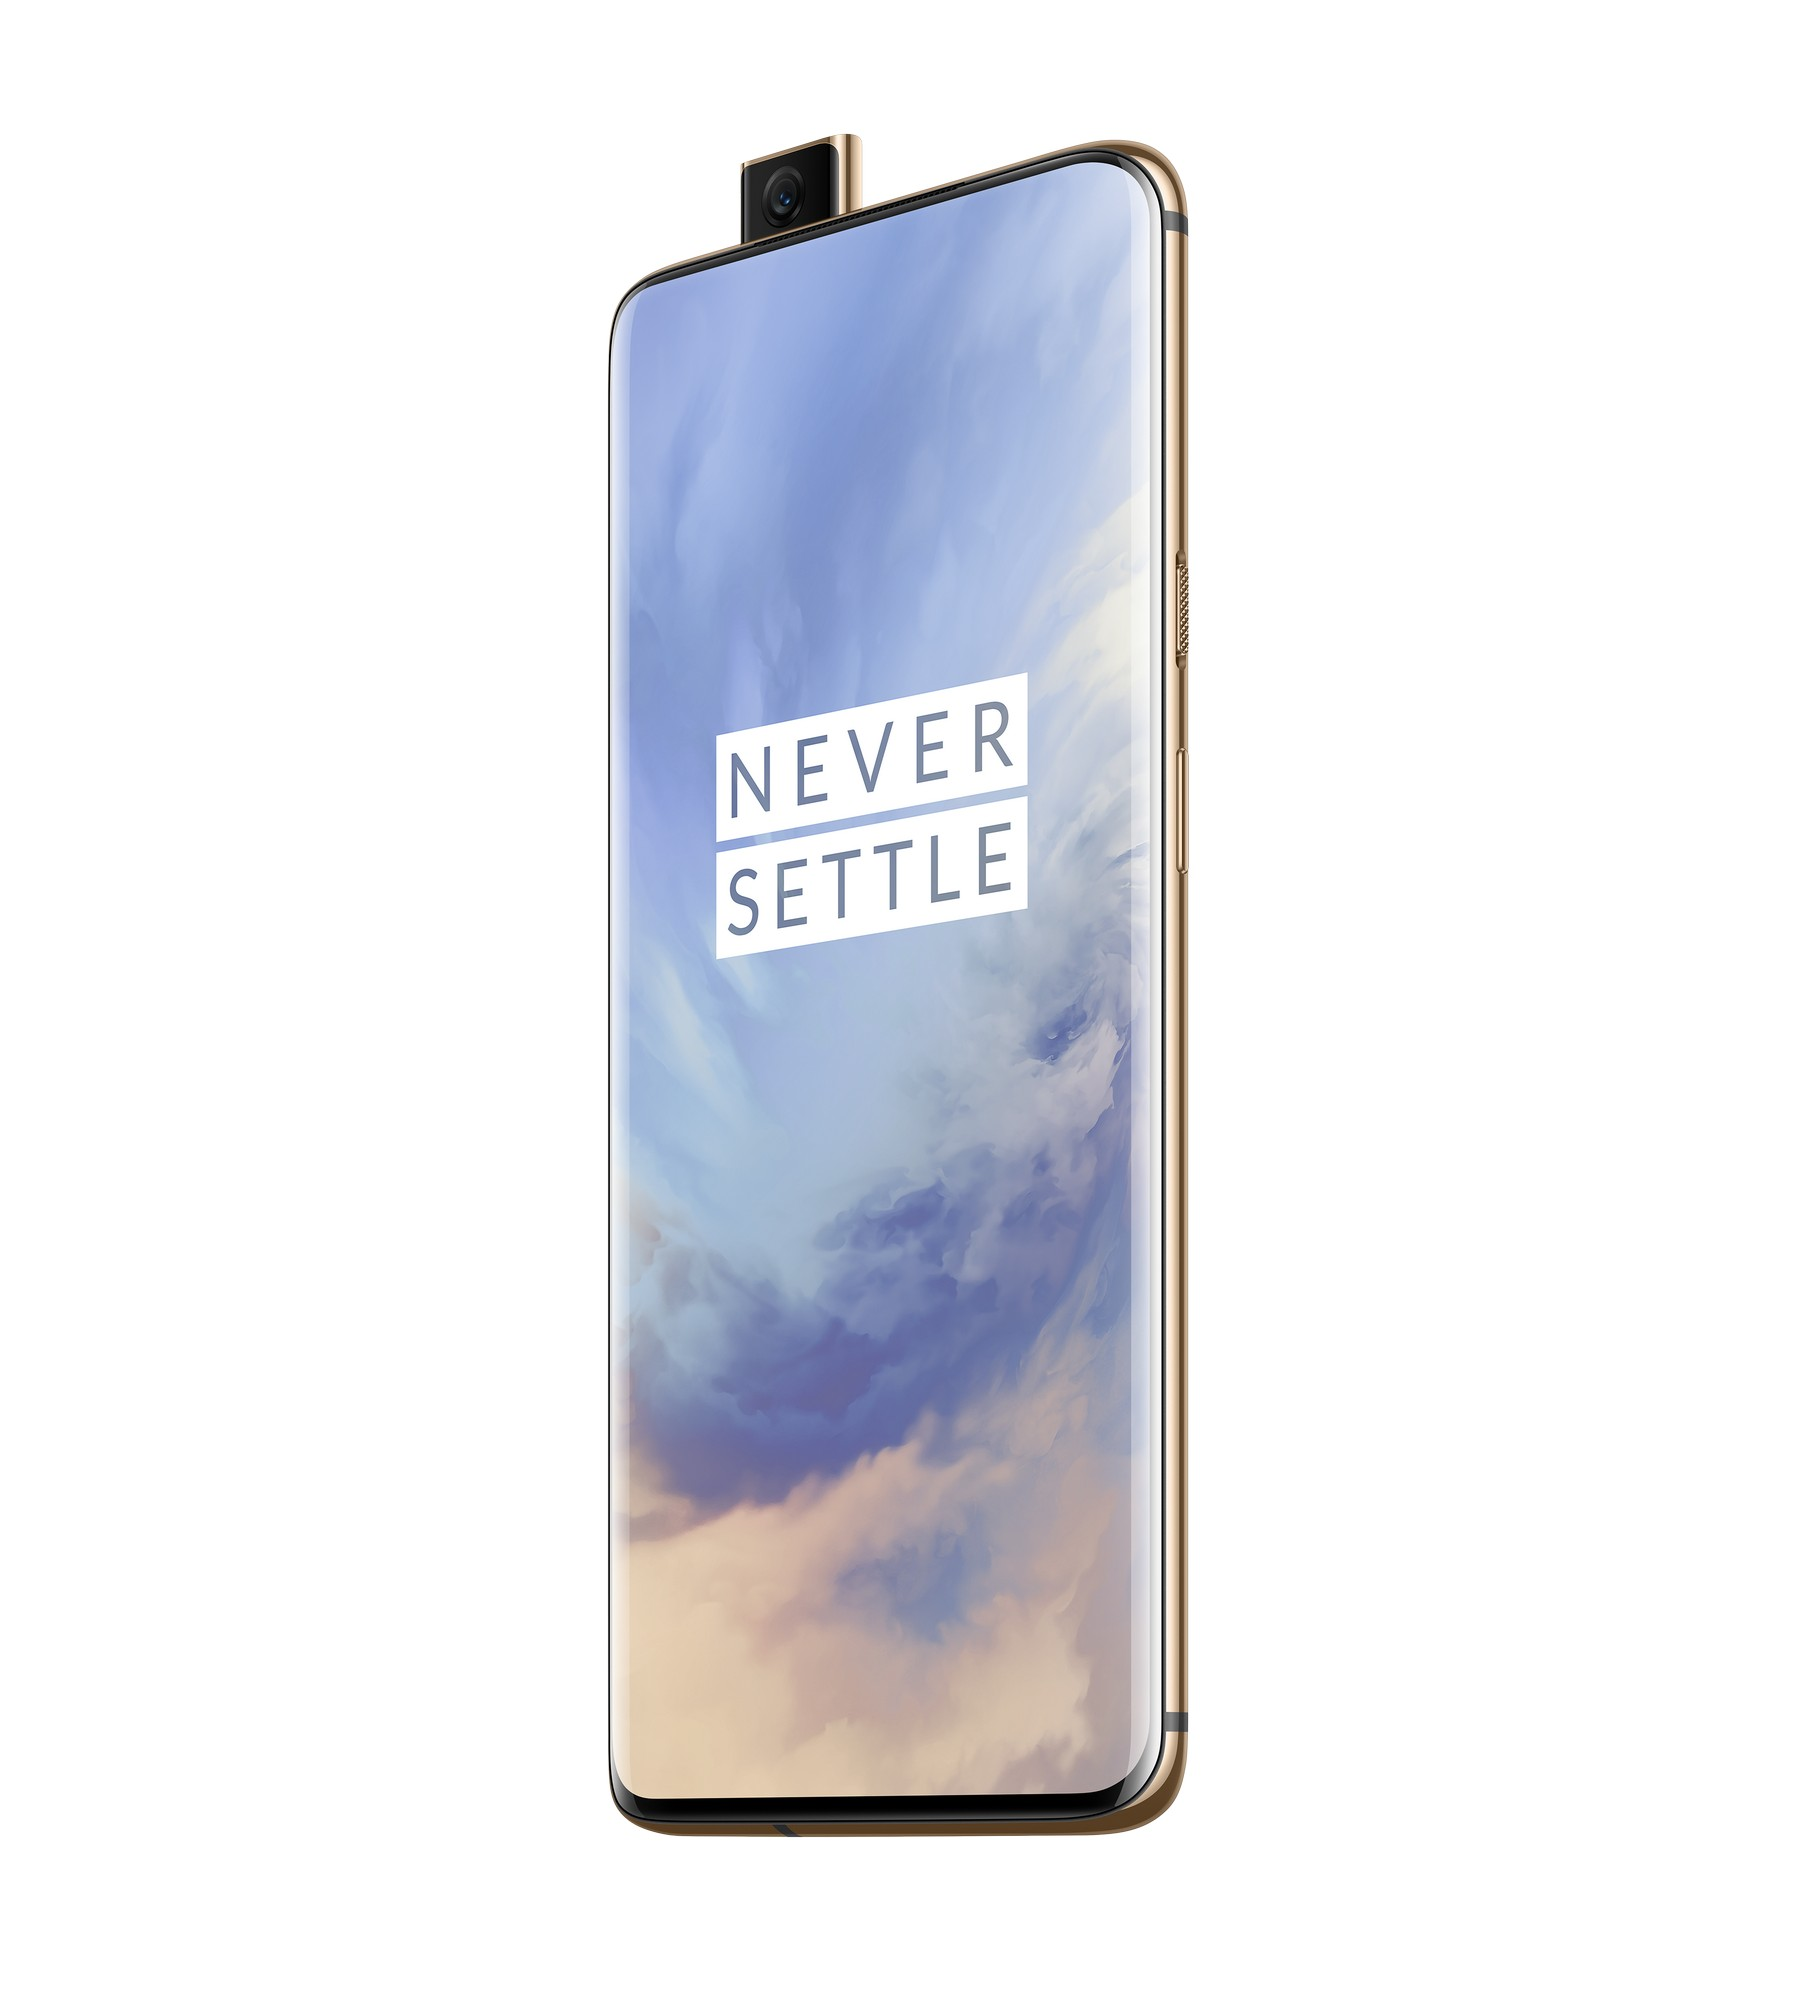 OnePlus pushed out OxygenOS 9.5.8 for the OnePlus 7 Pro with May Security Patch